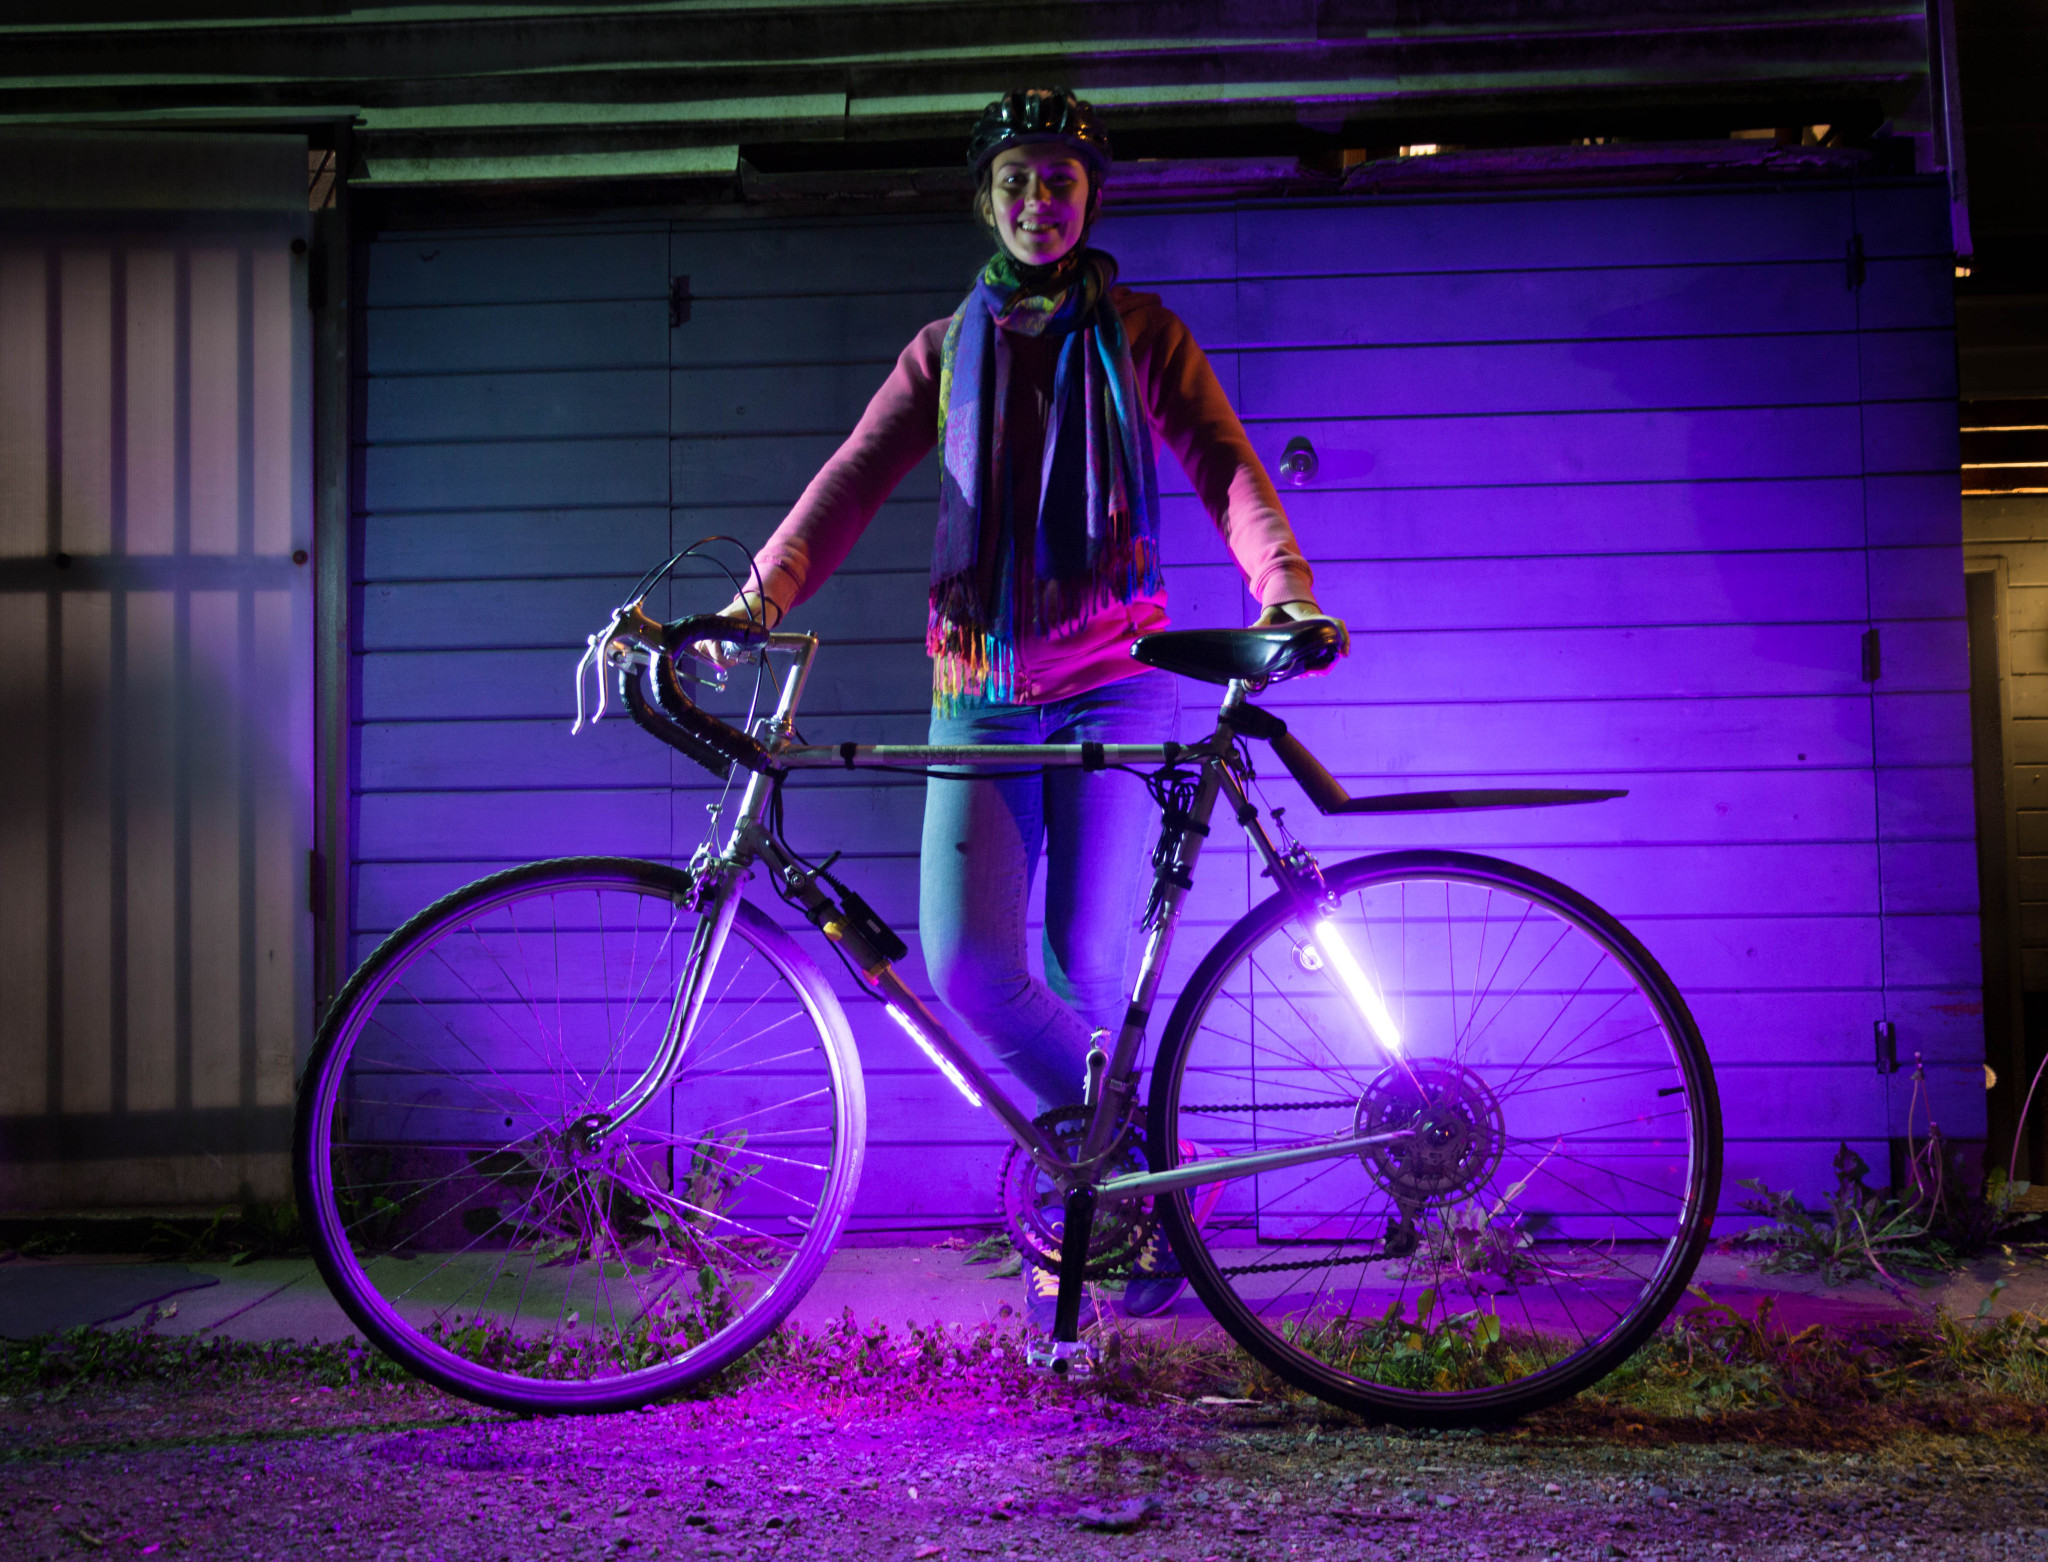 The LED lights can also be mounted on bikes (TetraGear)